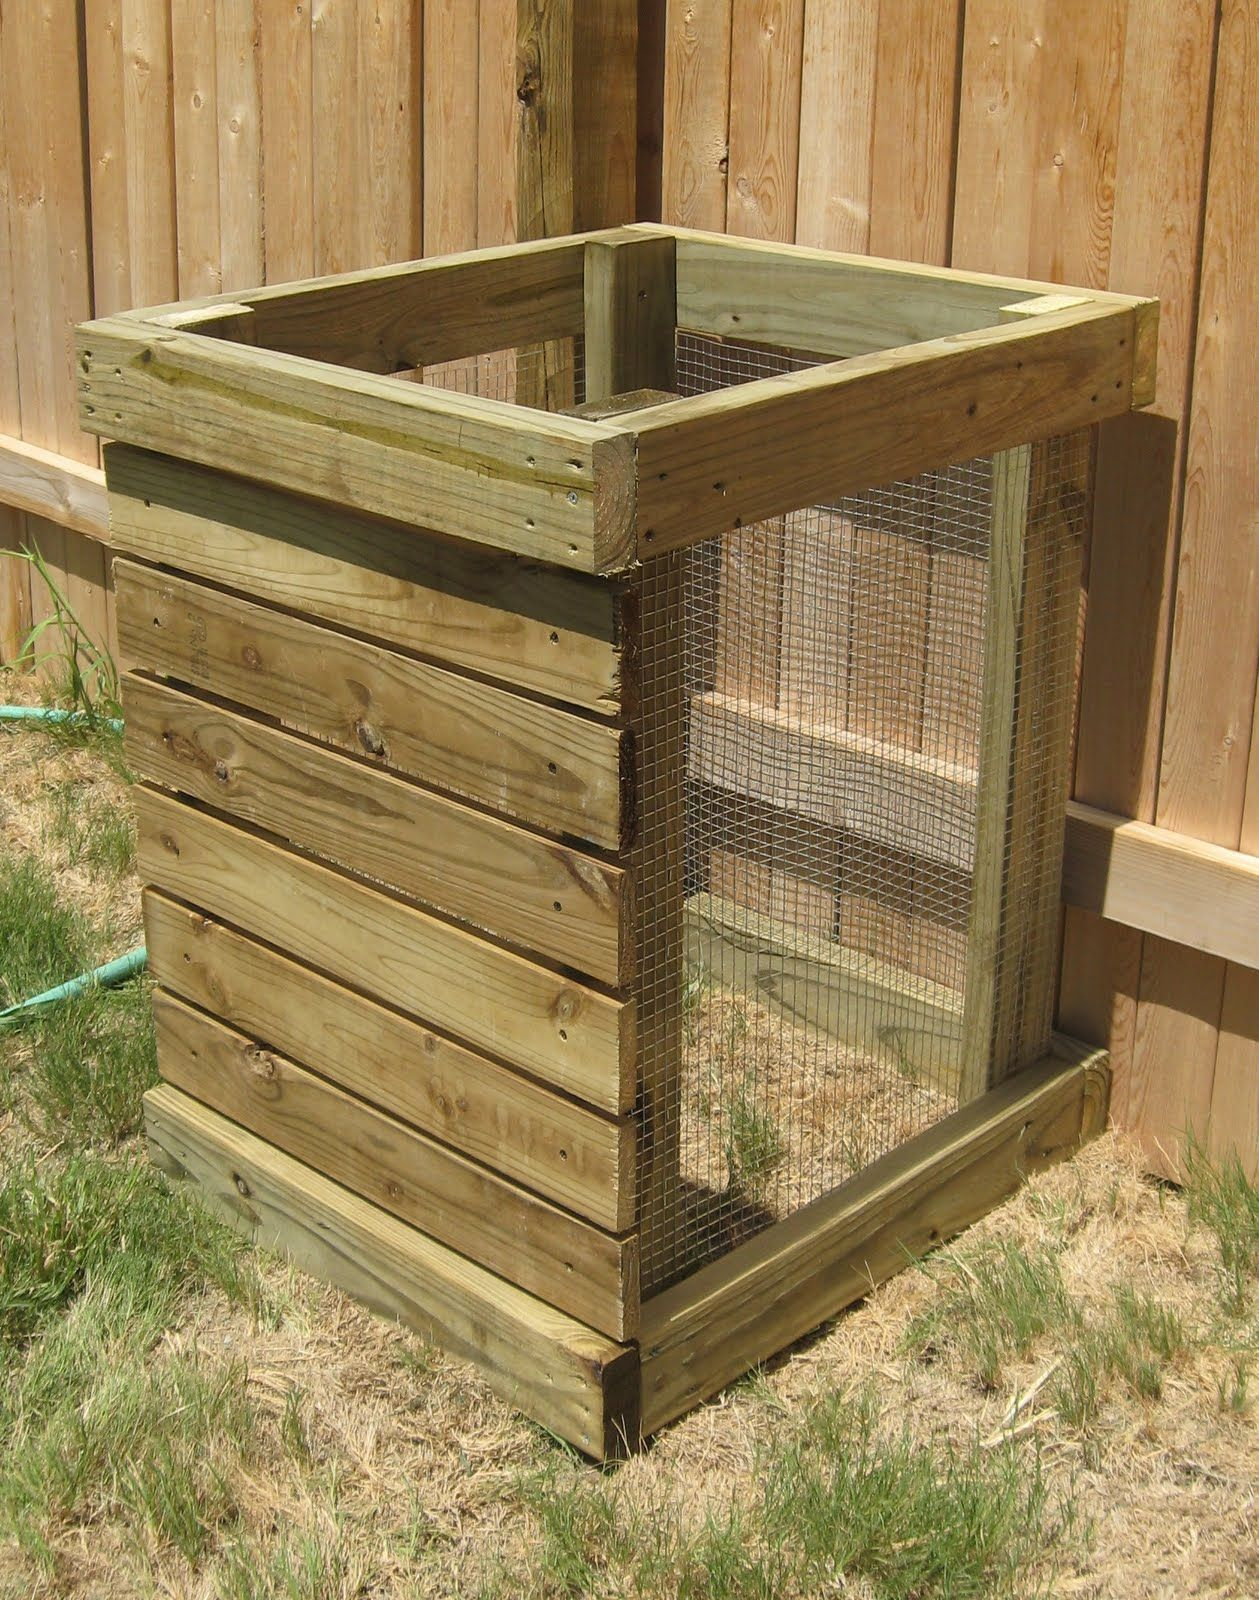 Diy Compost Bin Plans Homemade Compost Bin Have Been Doing My Research About